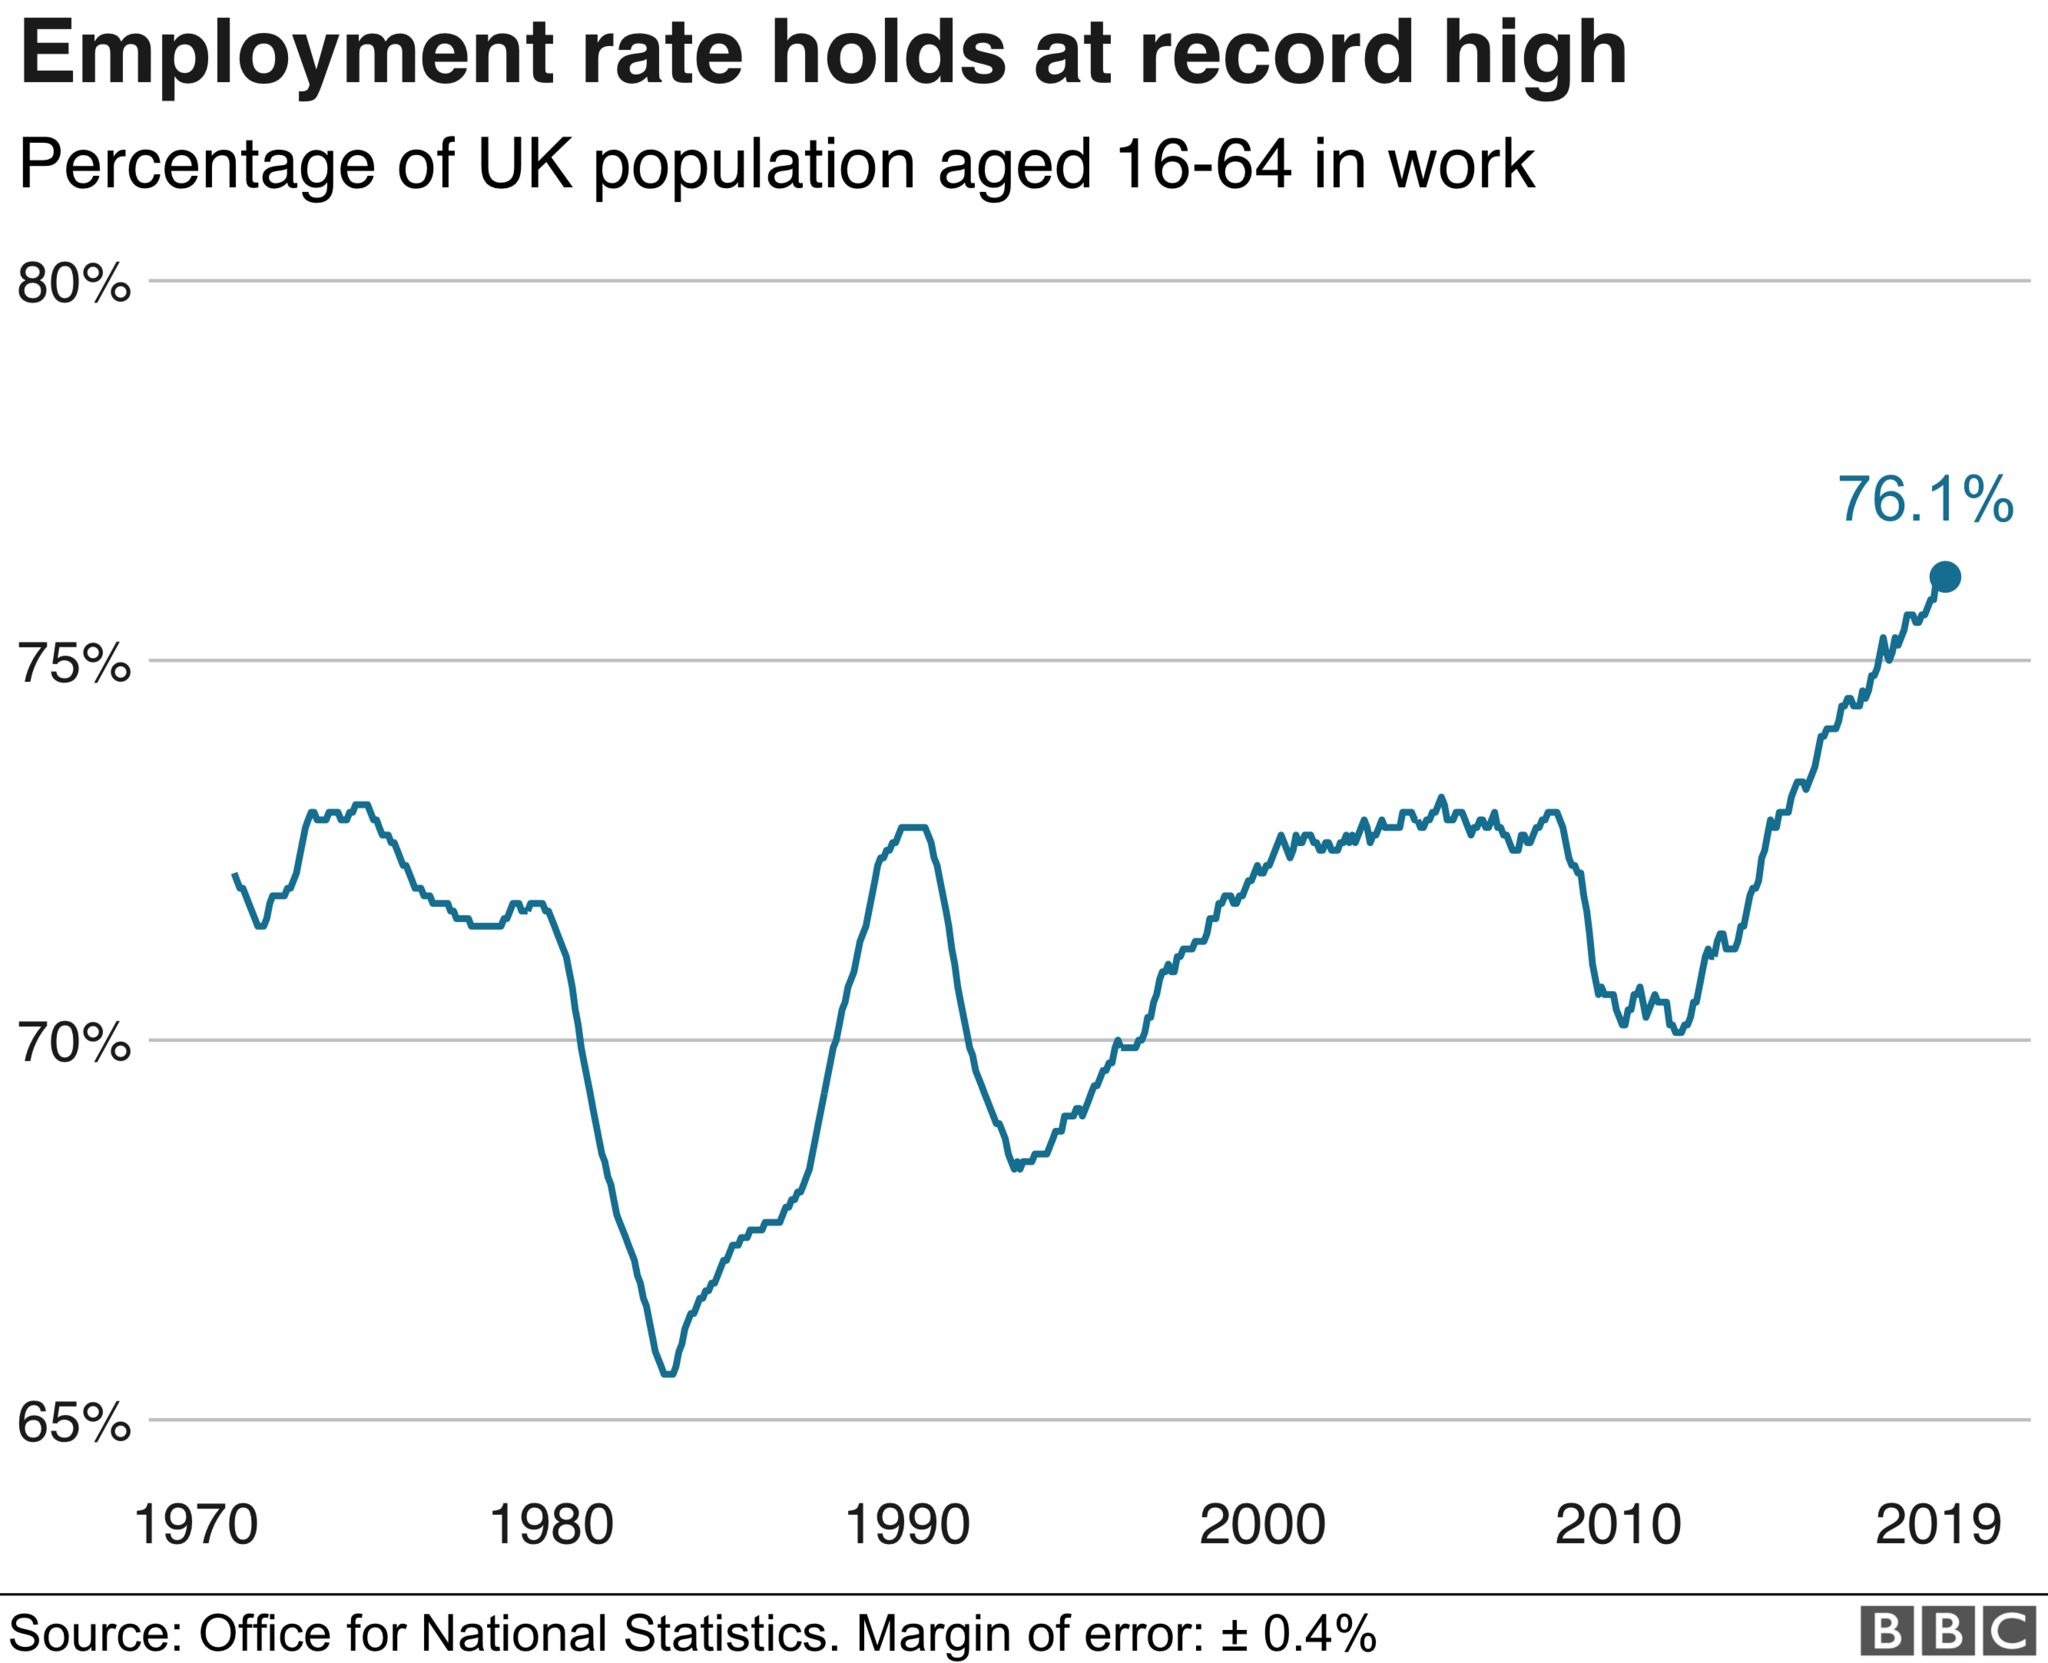 Employment rate holds at record high